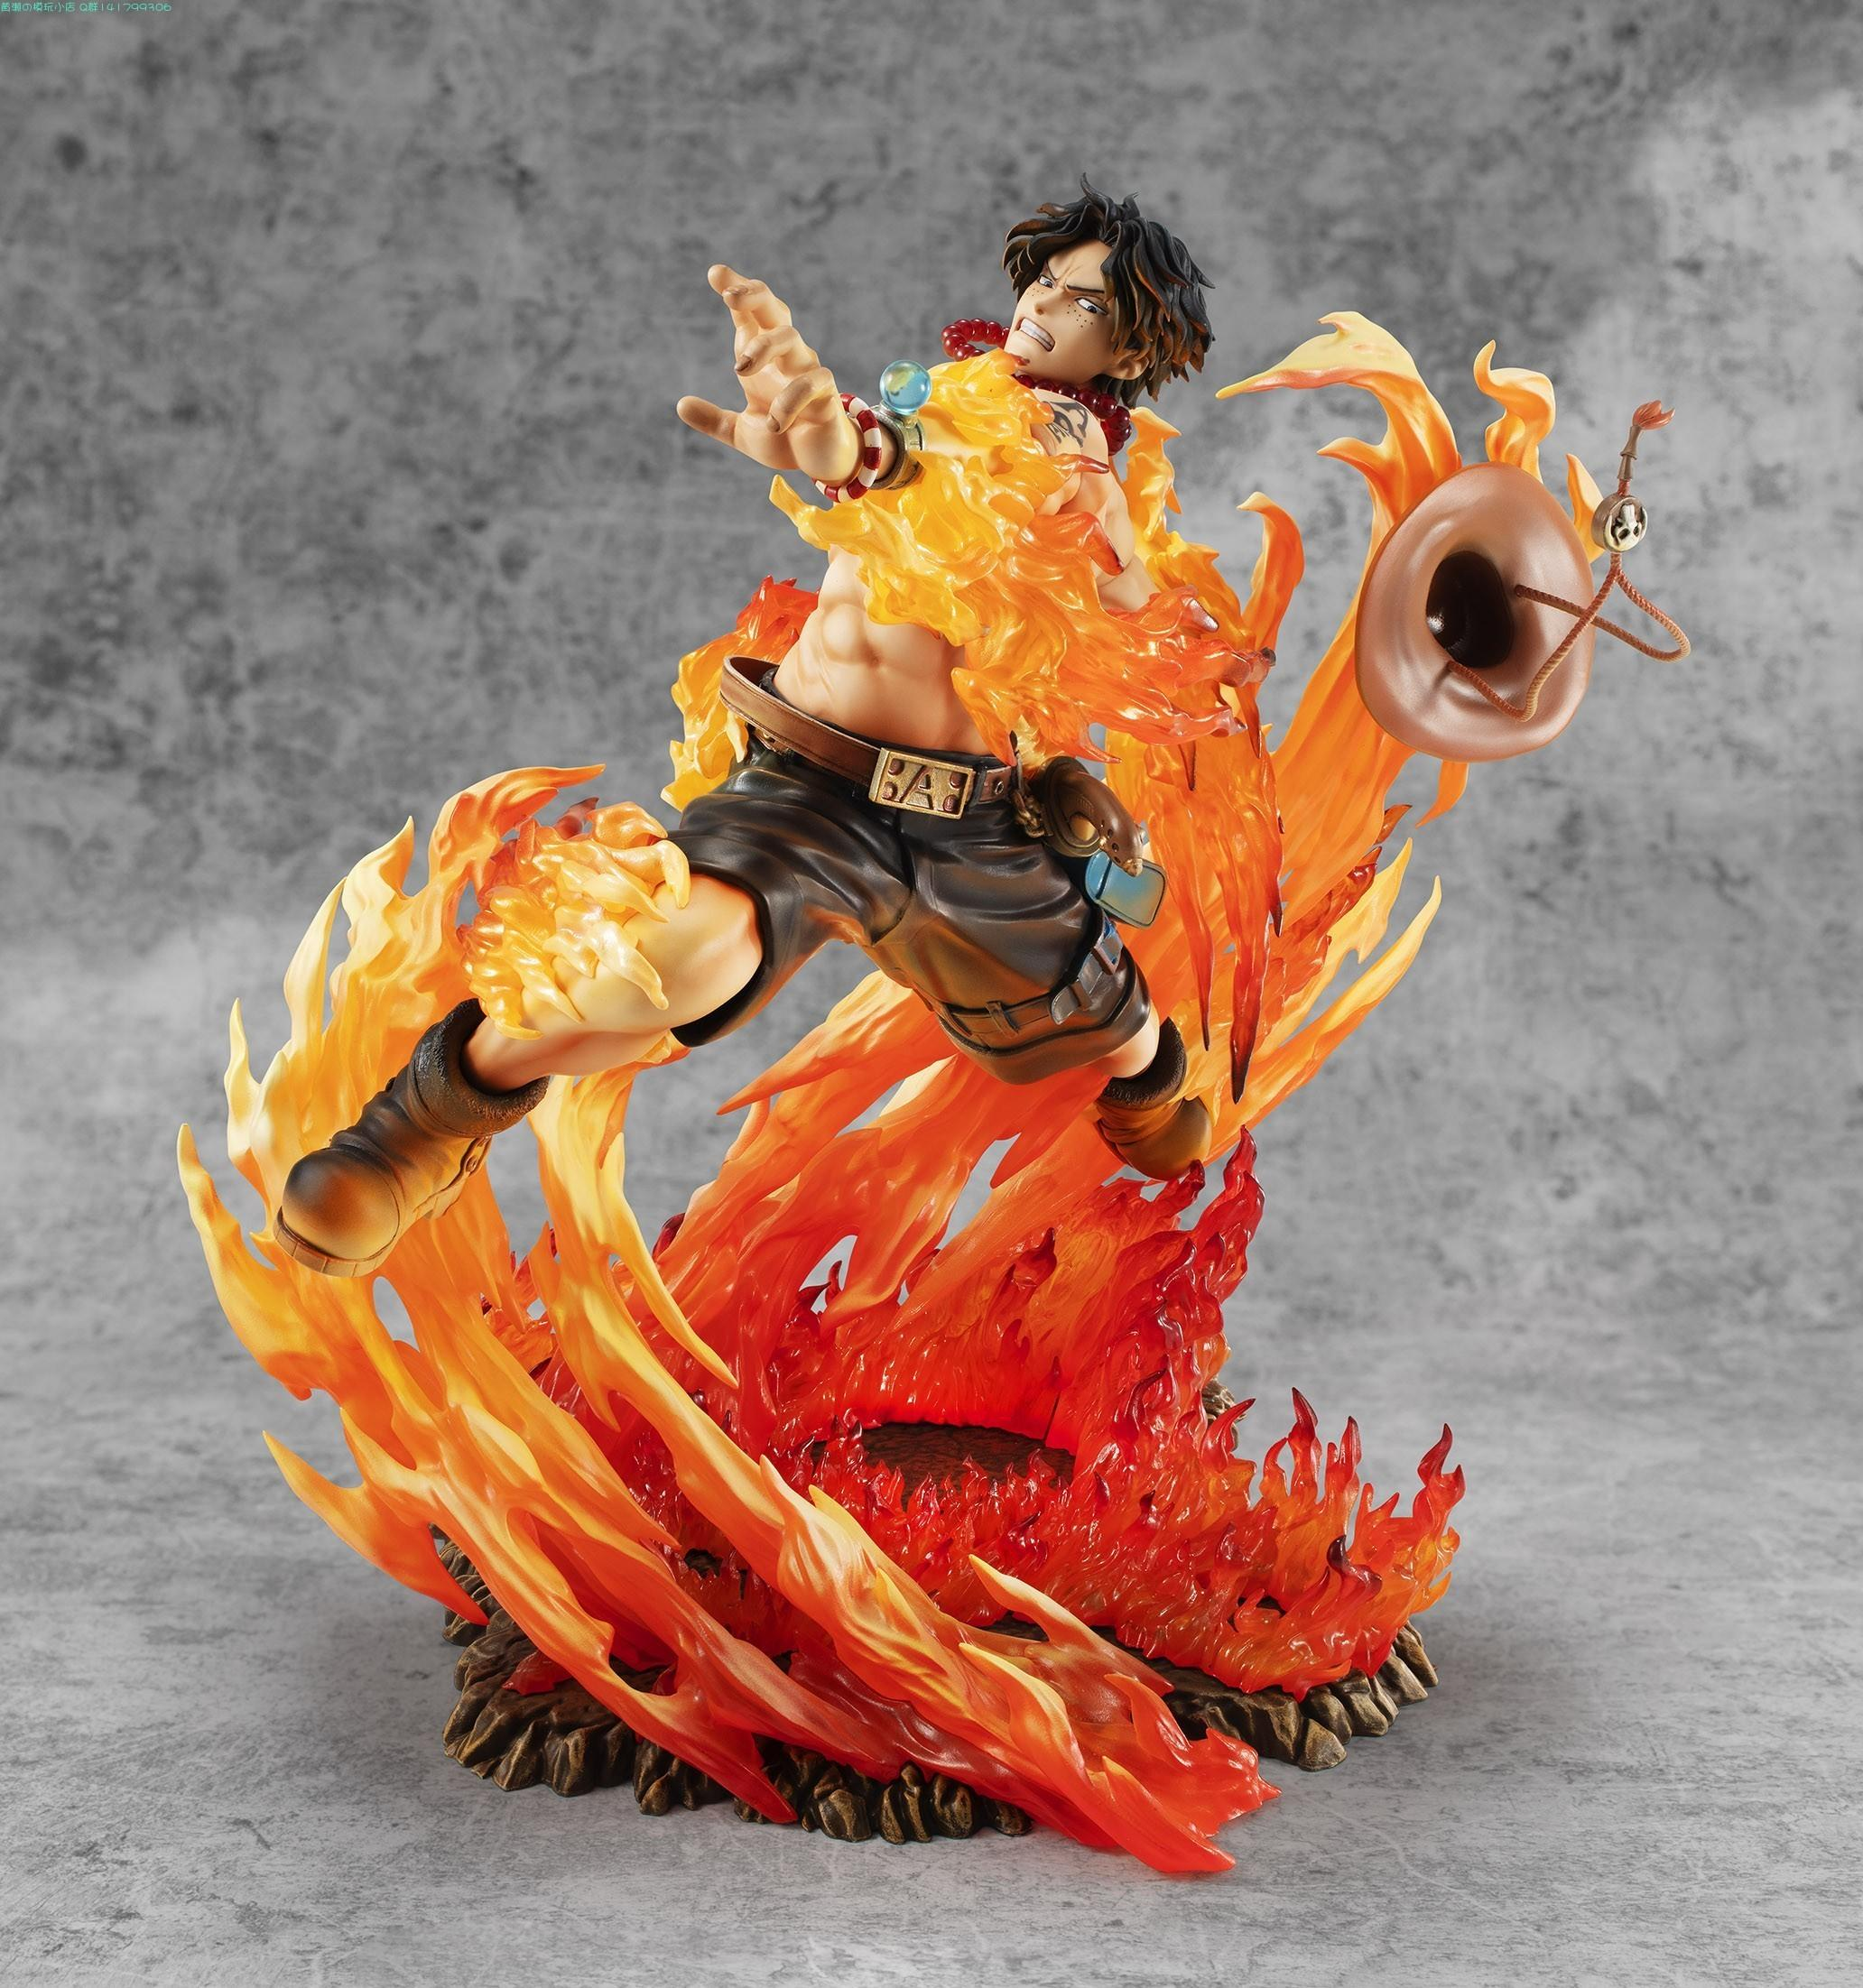 new 25cm One Piece Ace Fire Fist PVC Action Figure One Piece Anime Portgas * D * Ace 15th Anniversary Max Collection Figurine Toy Y200421